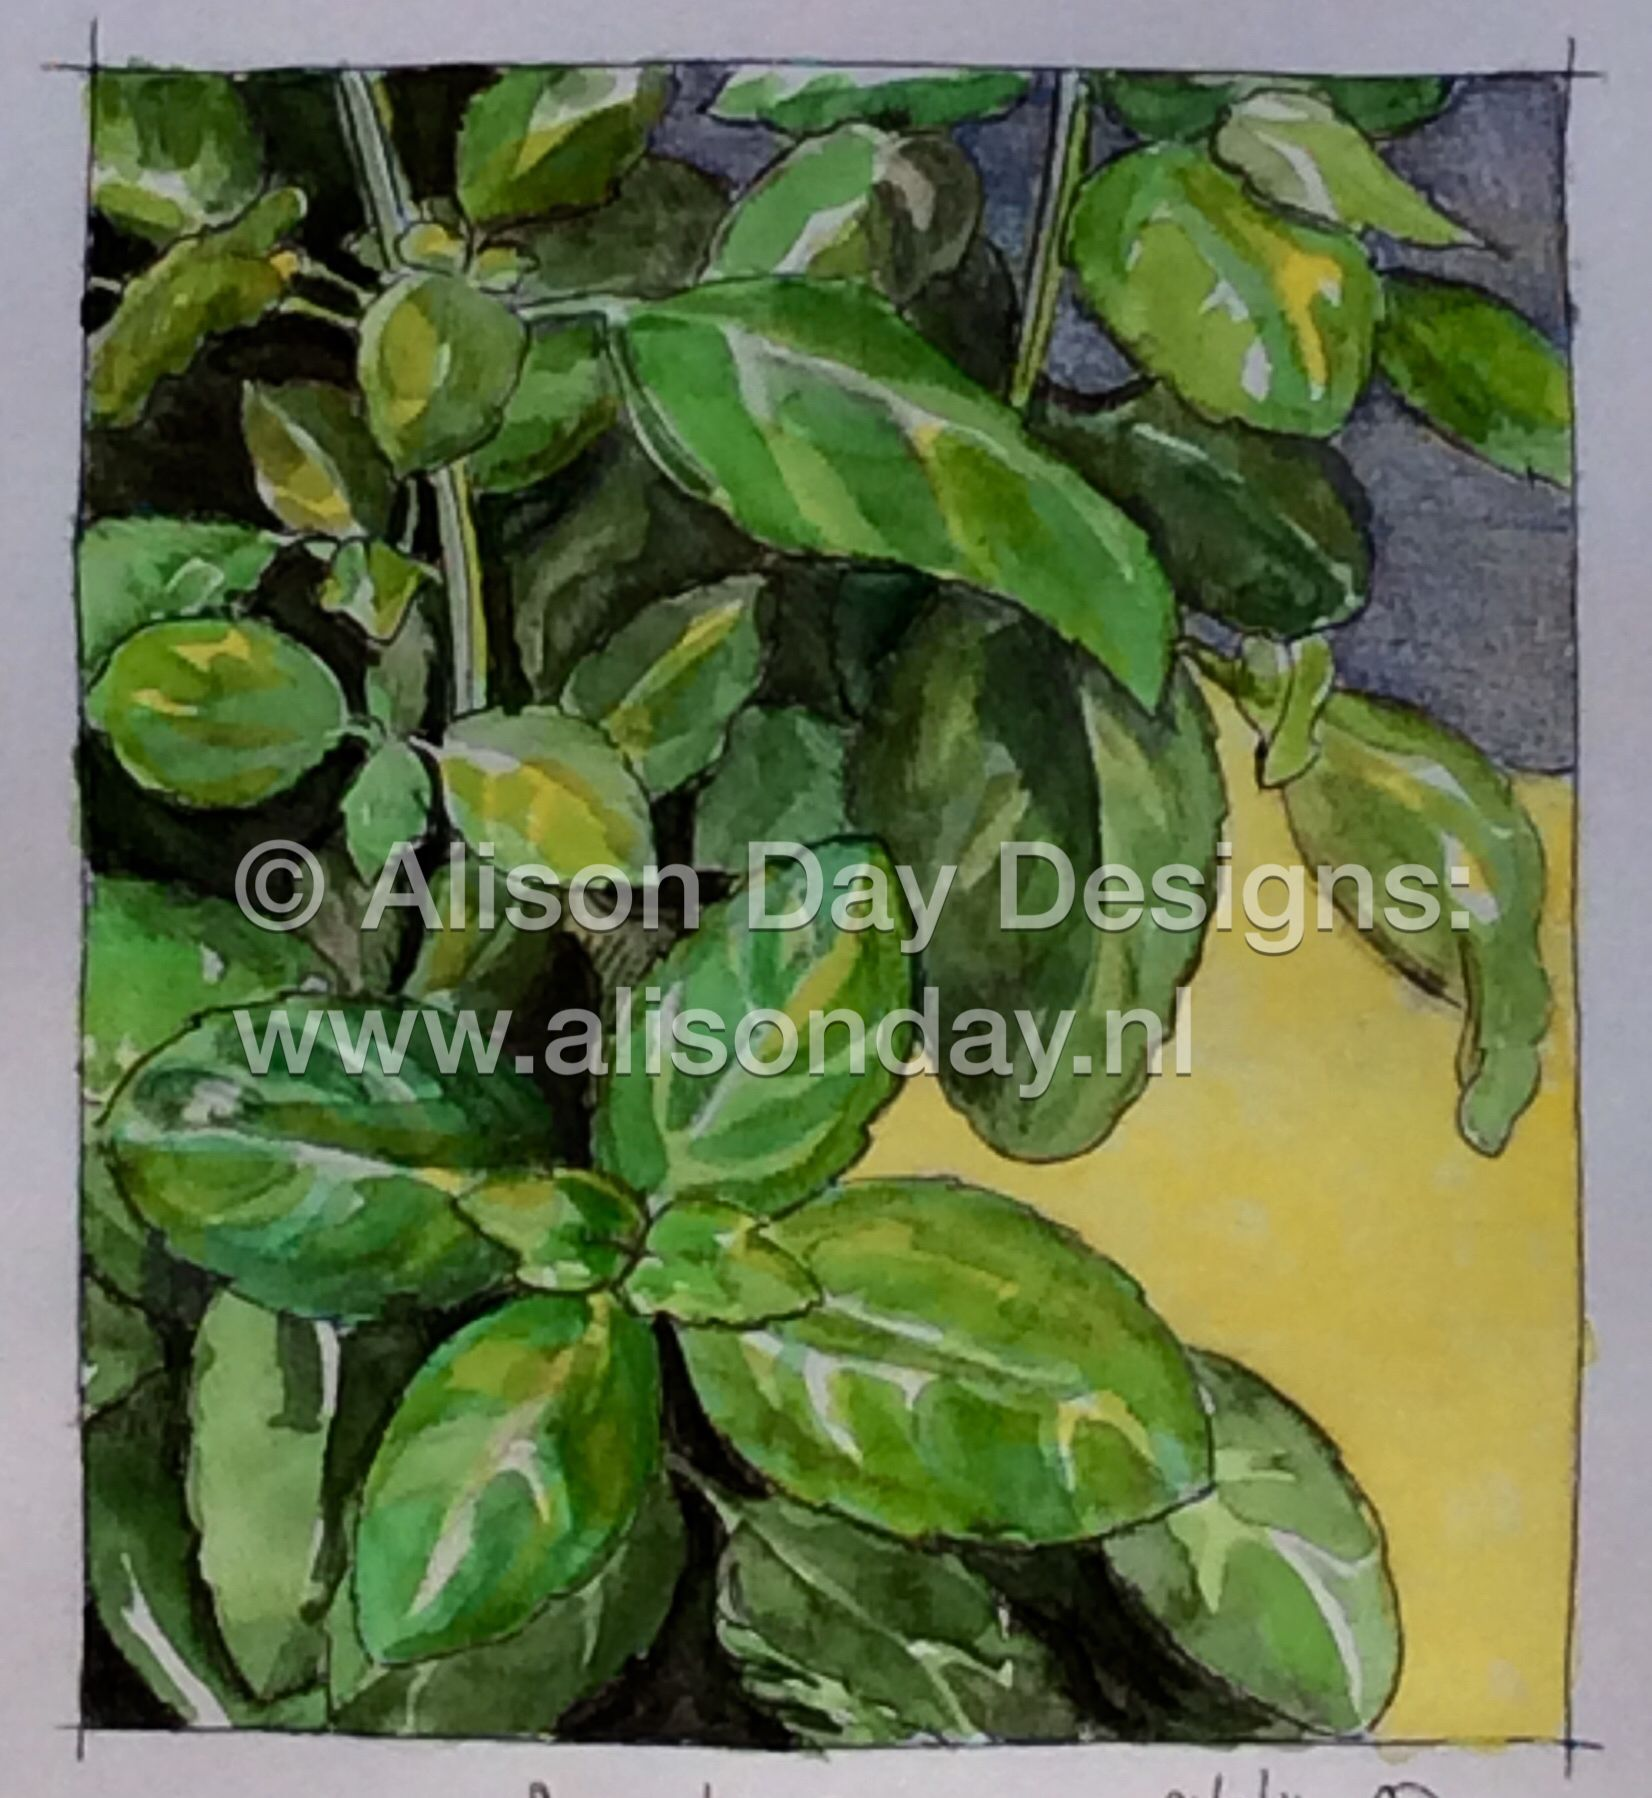 Aromatic Green by Alison Day #PaintingSeptember #Paintseptember